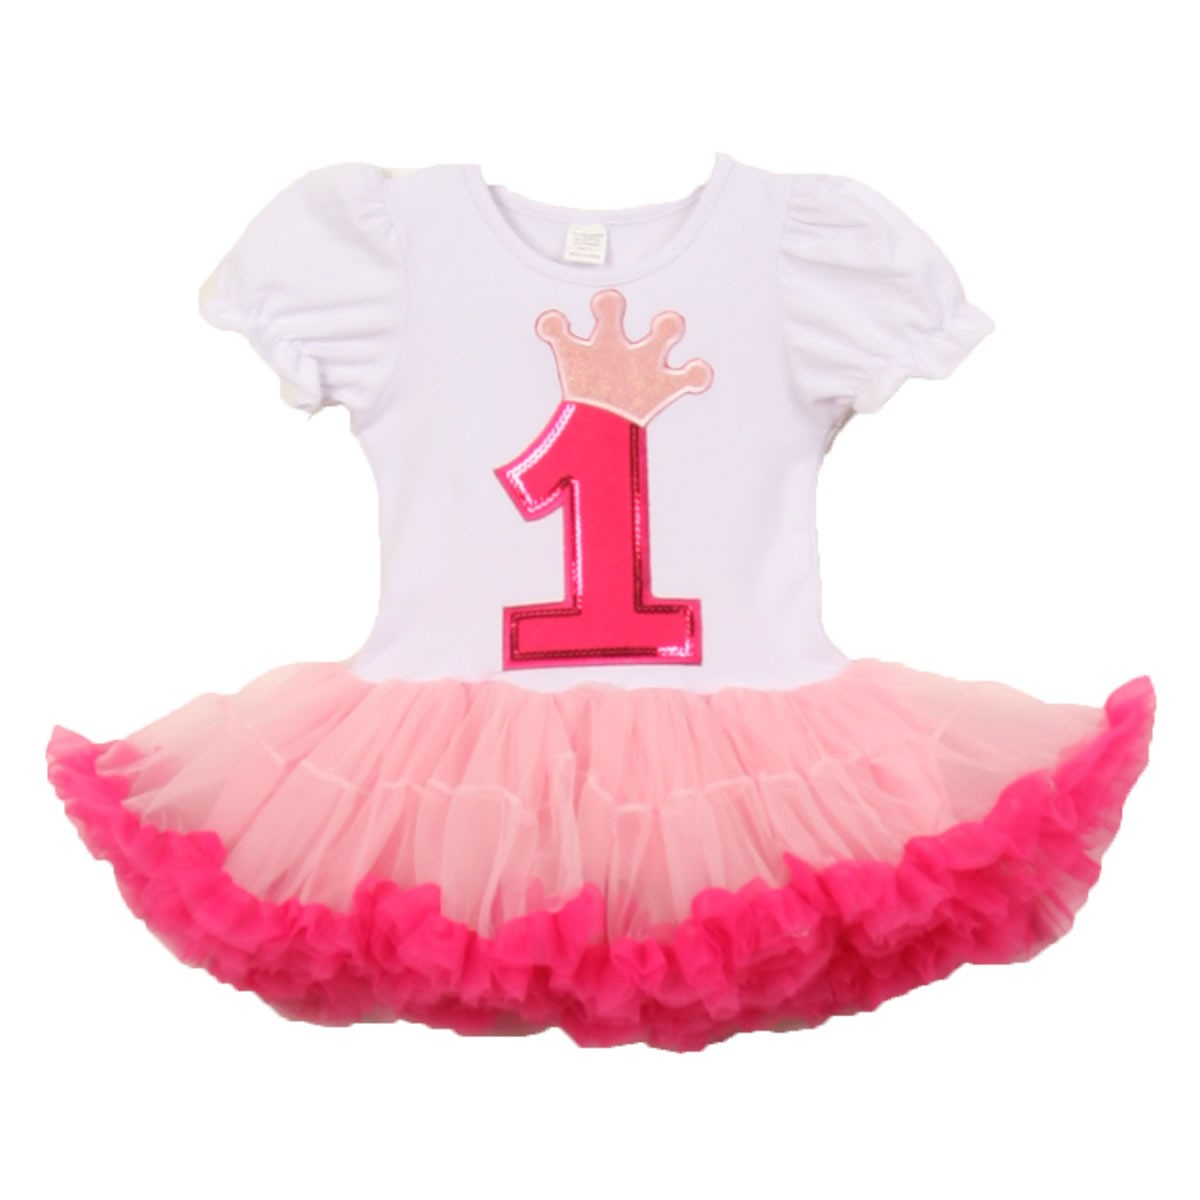 f5ac61ba Baby Girls White Pink Number Crown Applique Birthday Tutu Dress 1-2 Years -  Sophia's Style